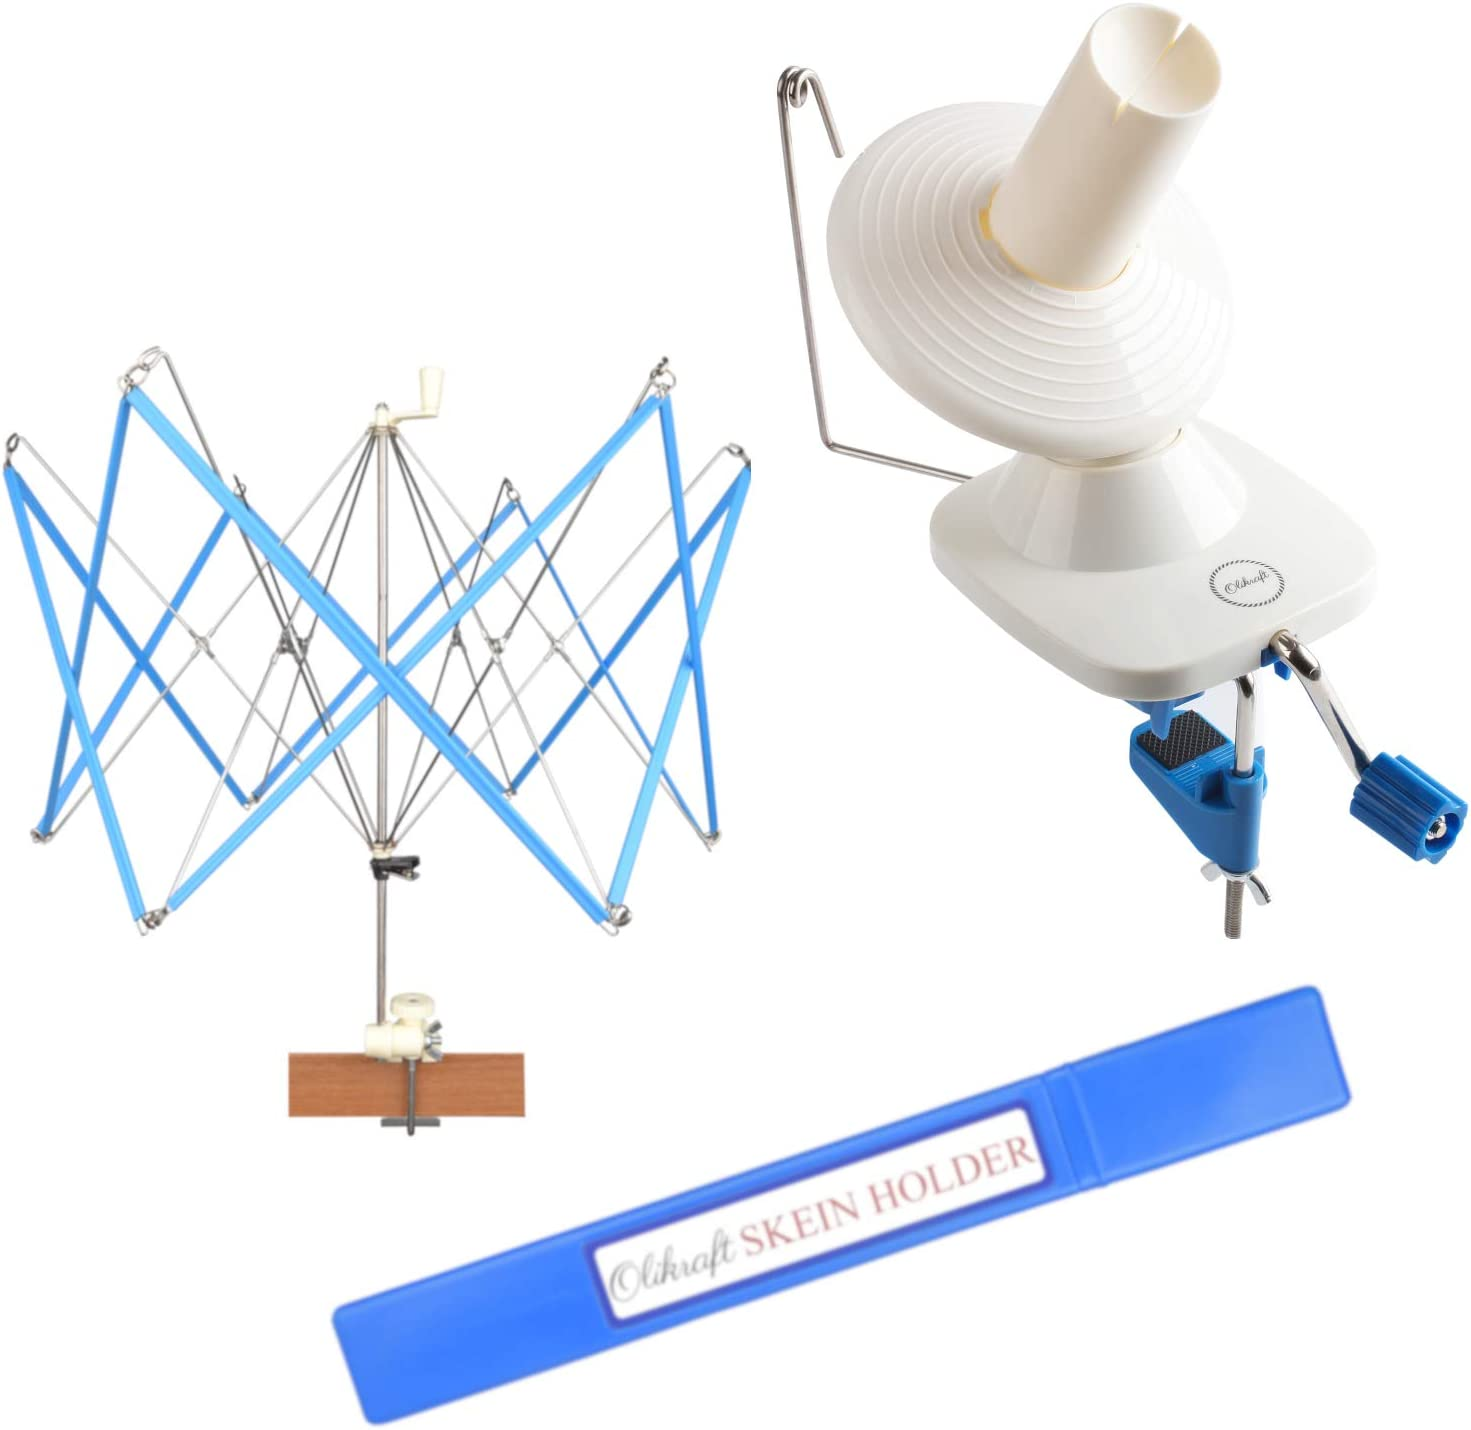 Yarn Swift-Best for Both Experts and Beginners: Yarn Ball Winder and Umbrella Swift (with Skein Holder) Basic Combo Set